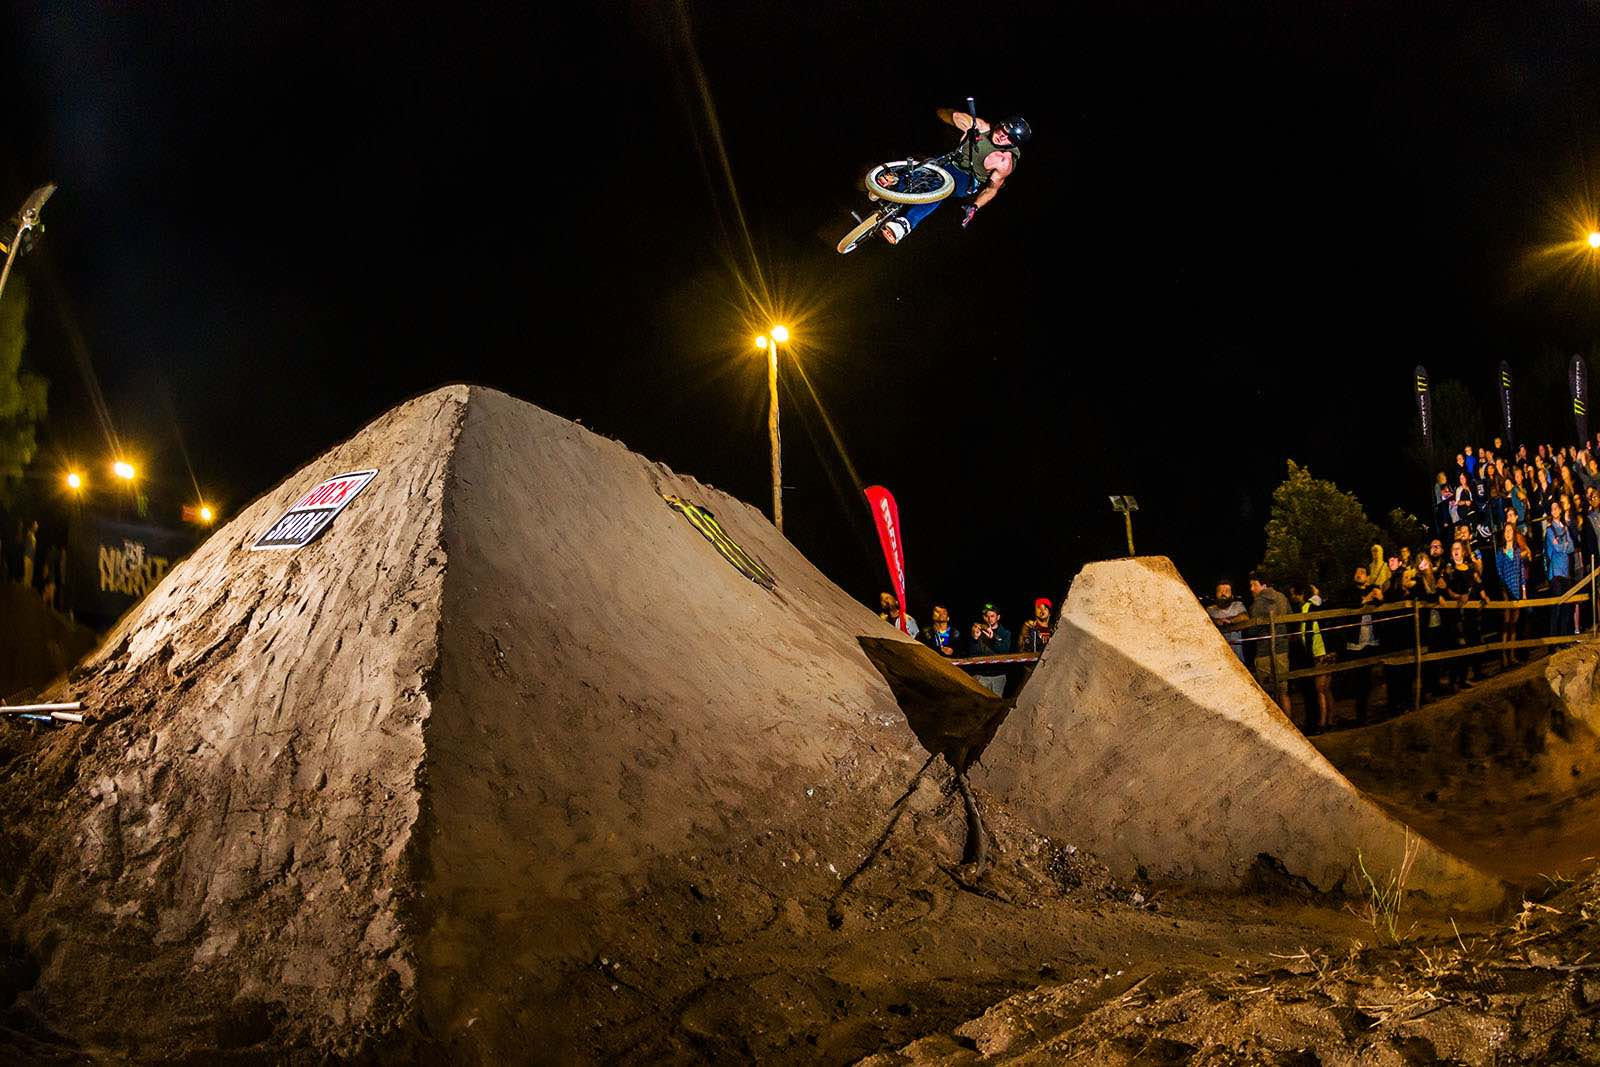 Declan Brooks tricking his way to first place in the BMX division at The Night harvest 2017